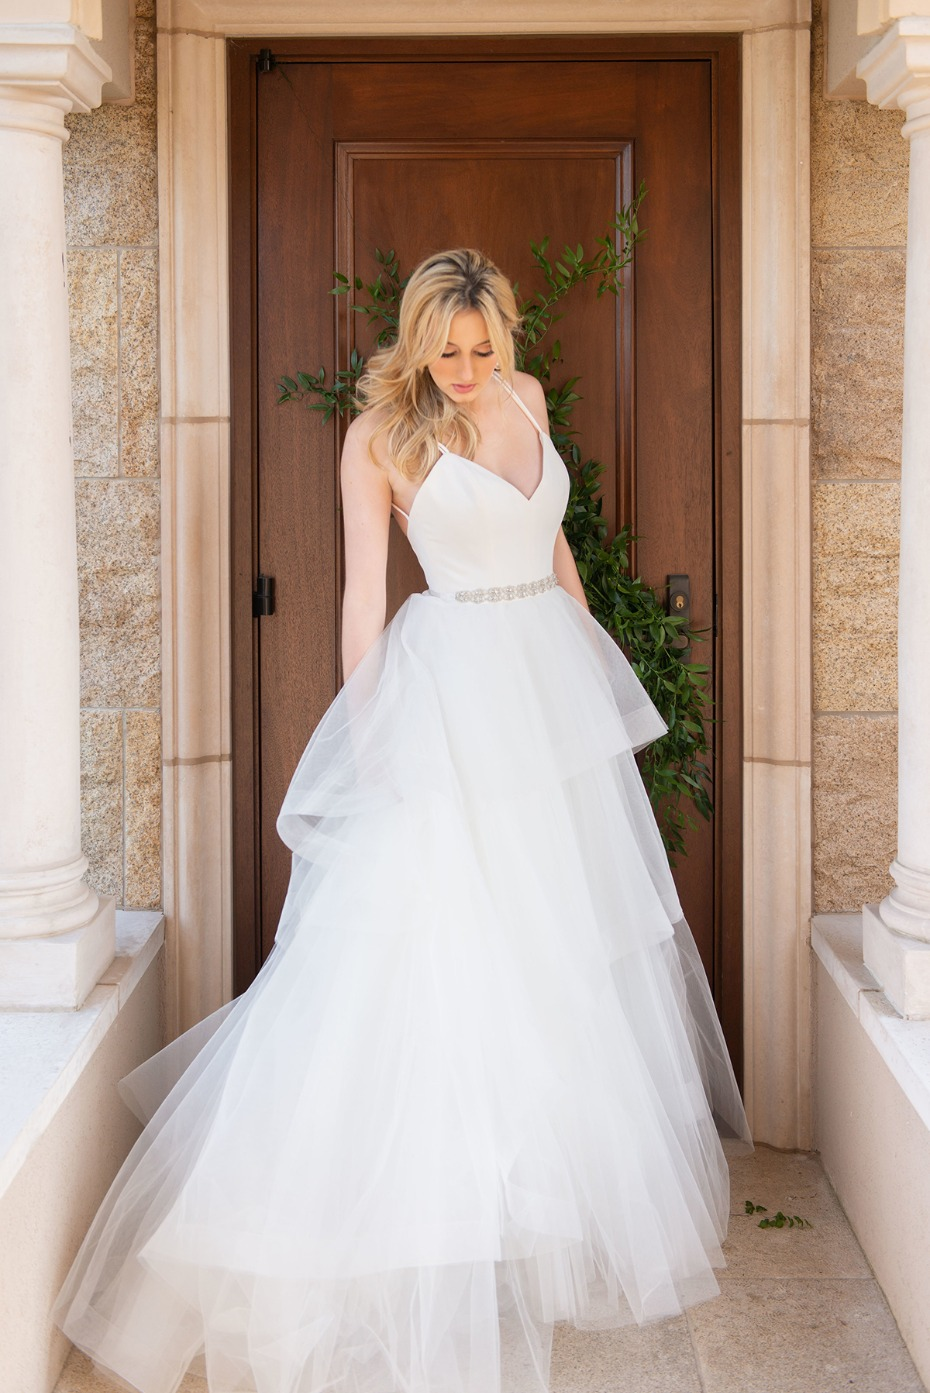 wedding gown with frothy tulle skirt